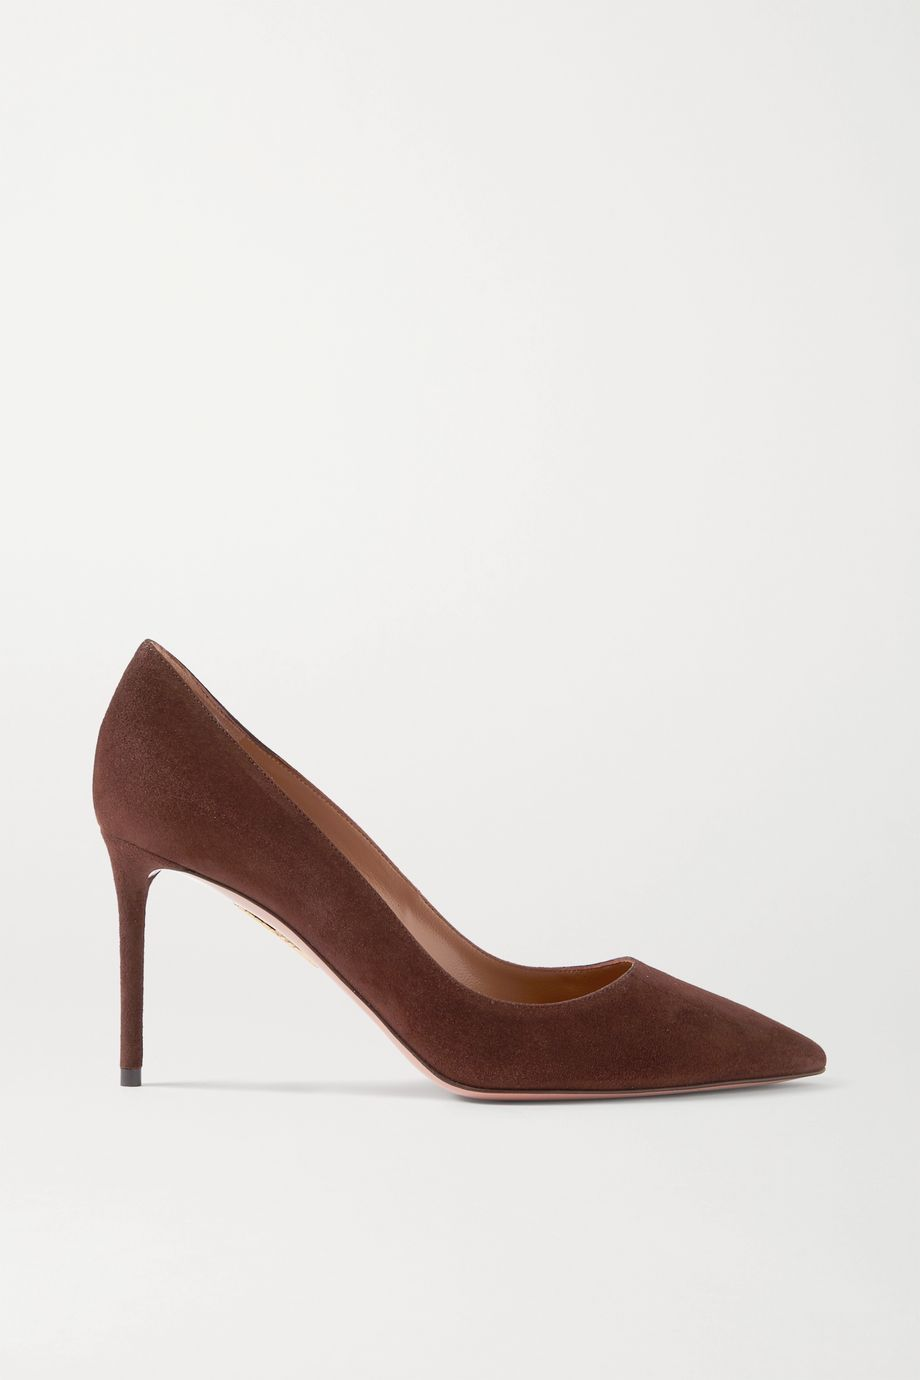 Aquazzura Purist 85 suede pumps